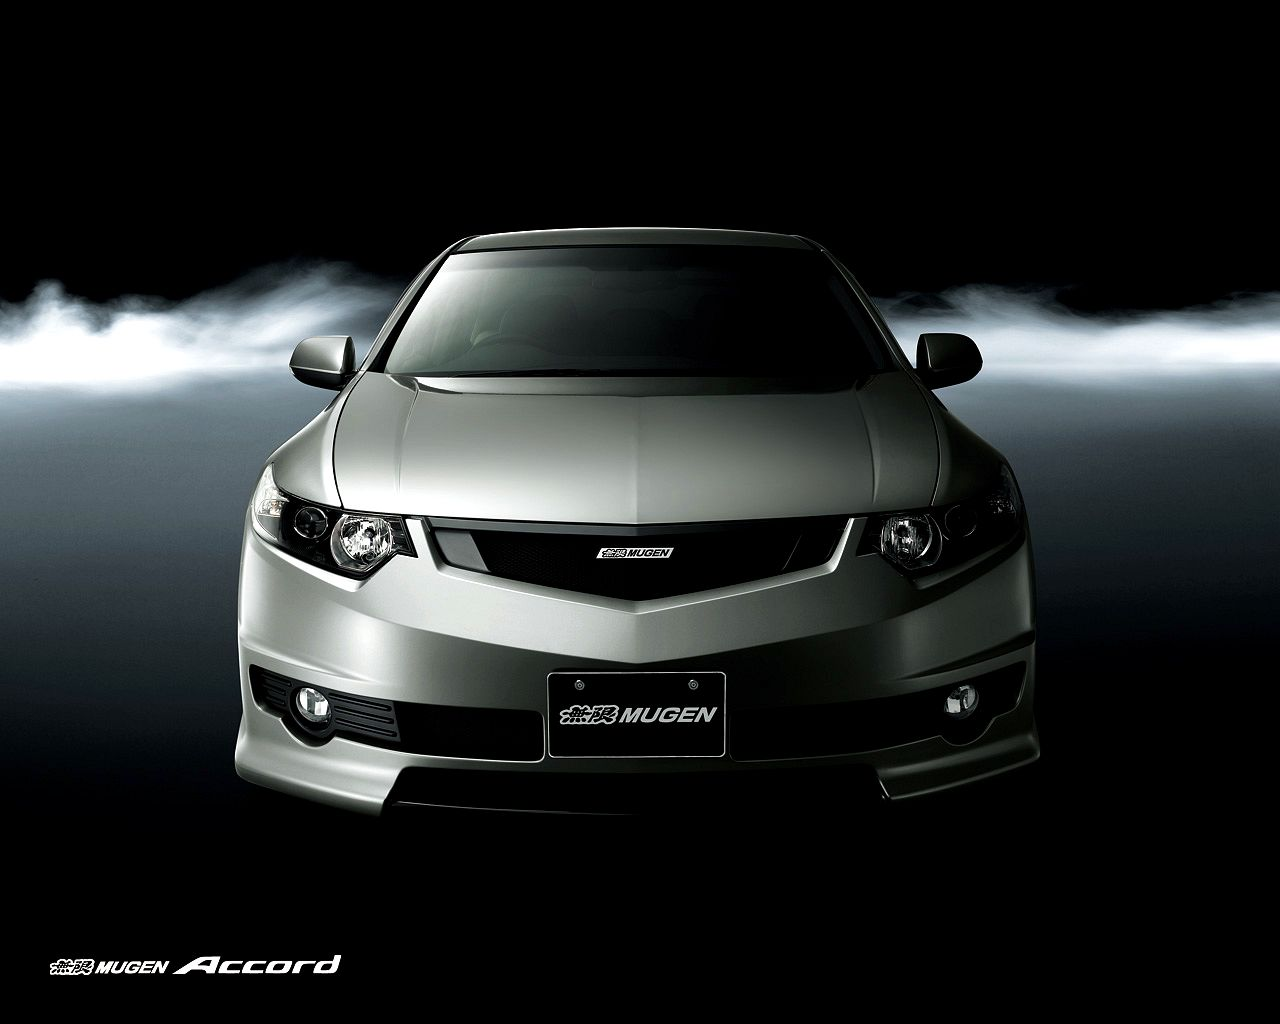 Honda Phone Wallpapers Honda Mugen Accord Wallpaper 1280x1024 Id 357